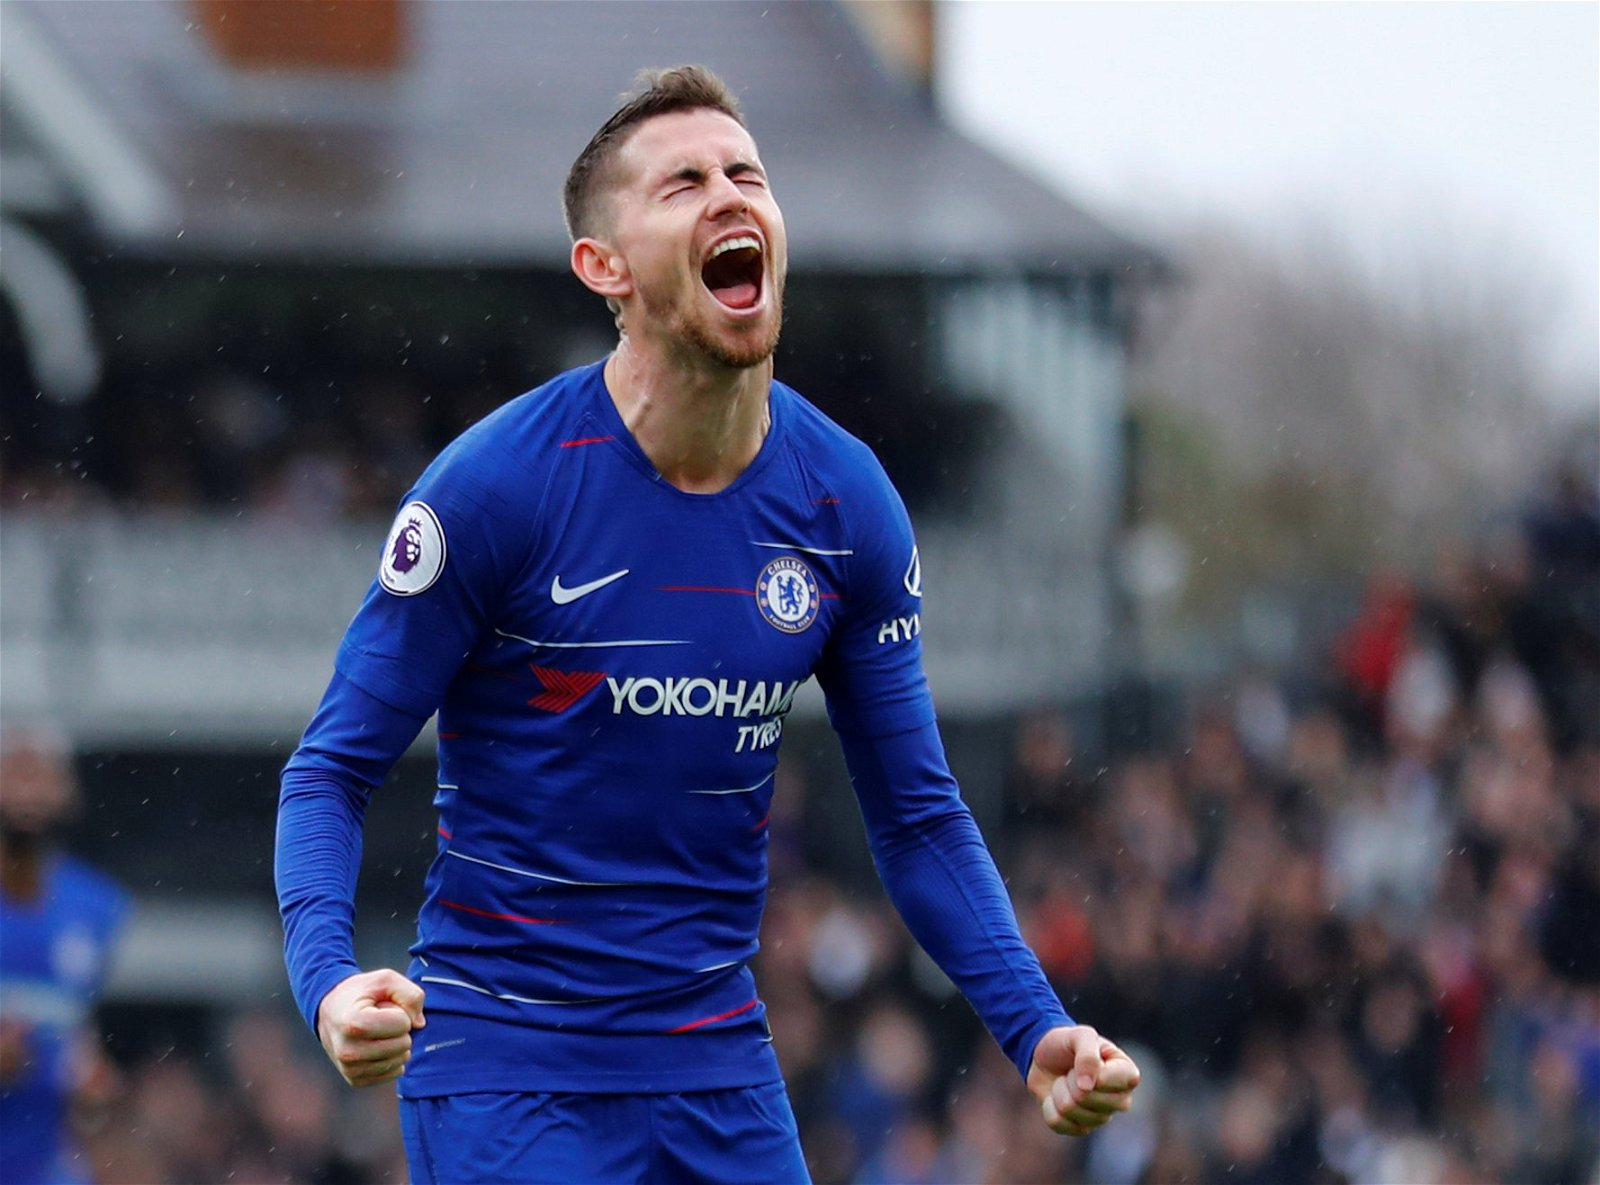 Jorginho celebrates scoring the winner for Chelsea against Fulham - How Sarri can improve Chelsea's midfield without spending a penny this summer - opinion